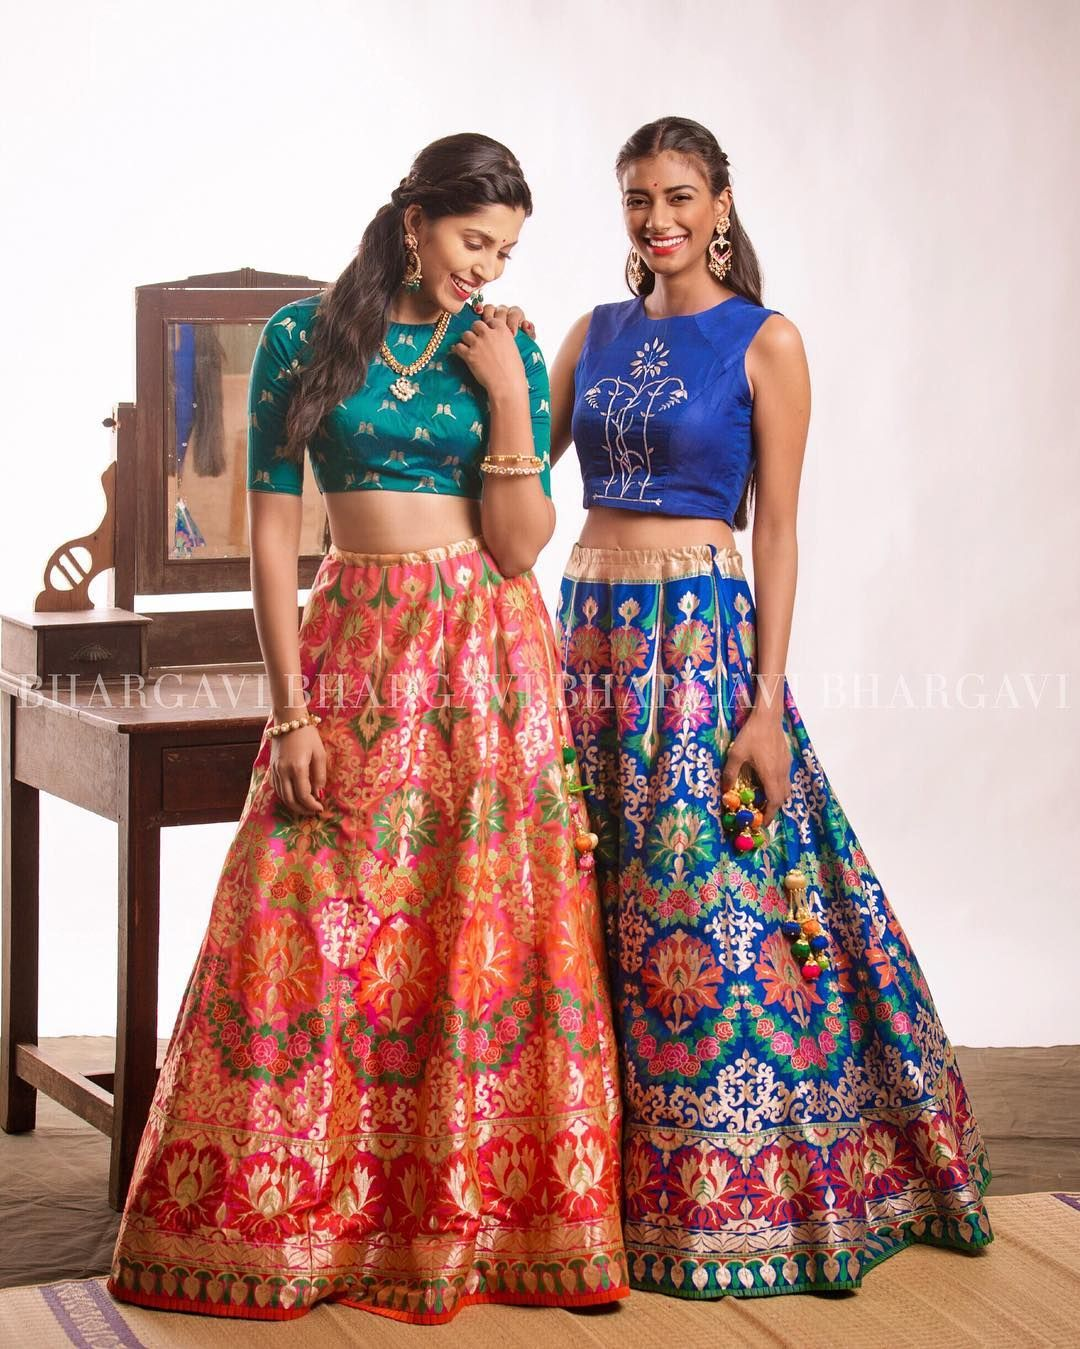 7a96552d090b7 Lehenga Accessories  How to Select the Best  This Will Help You Decide